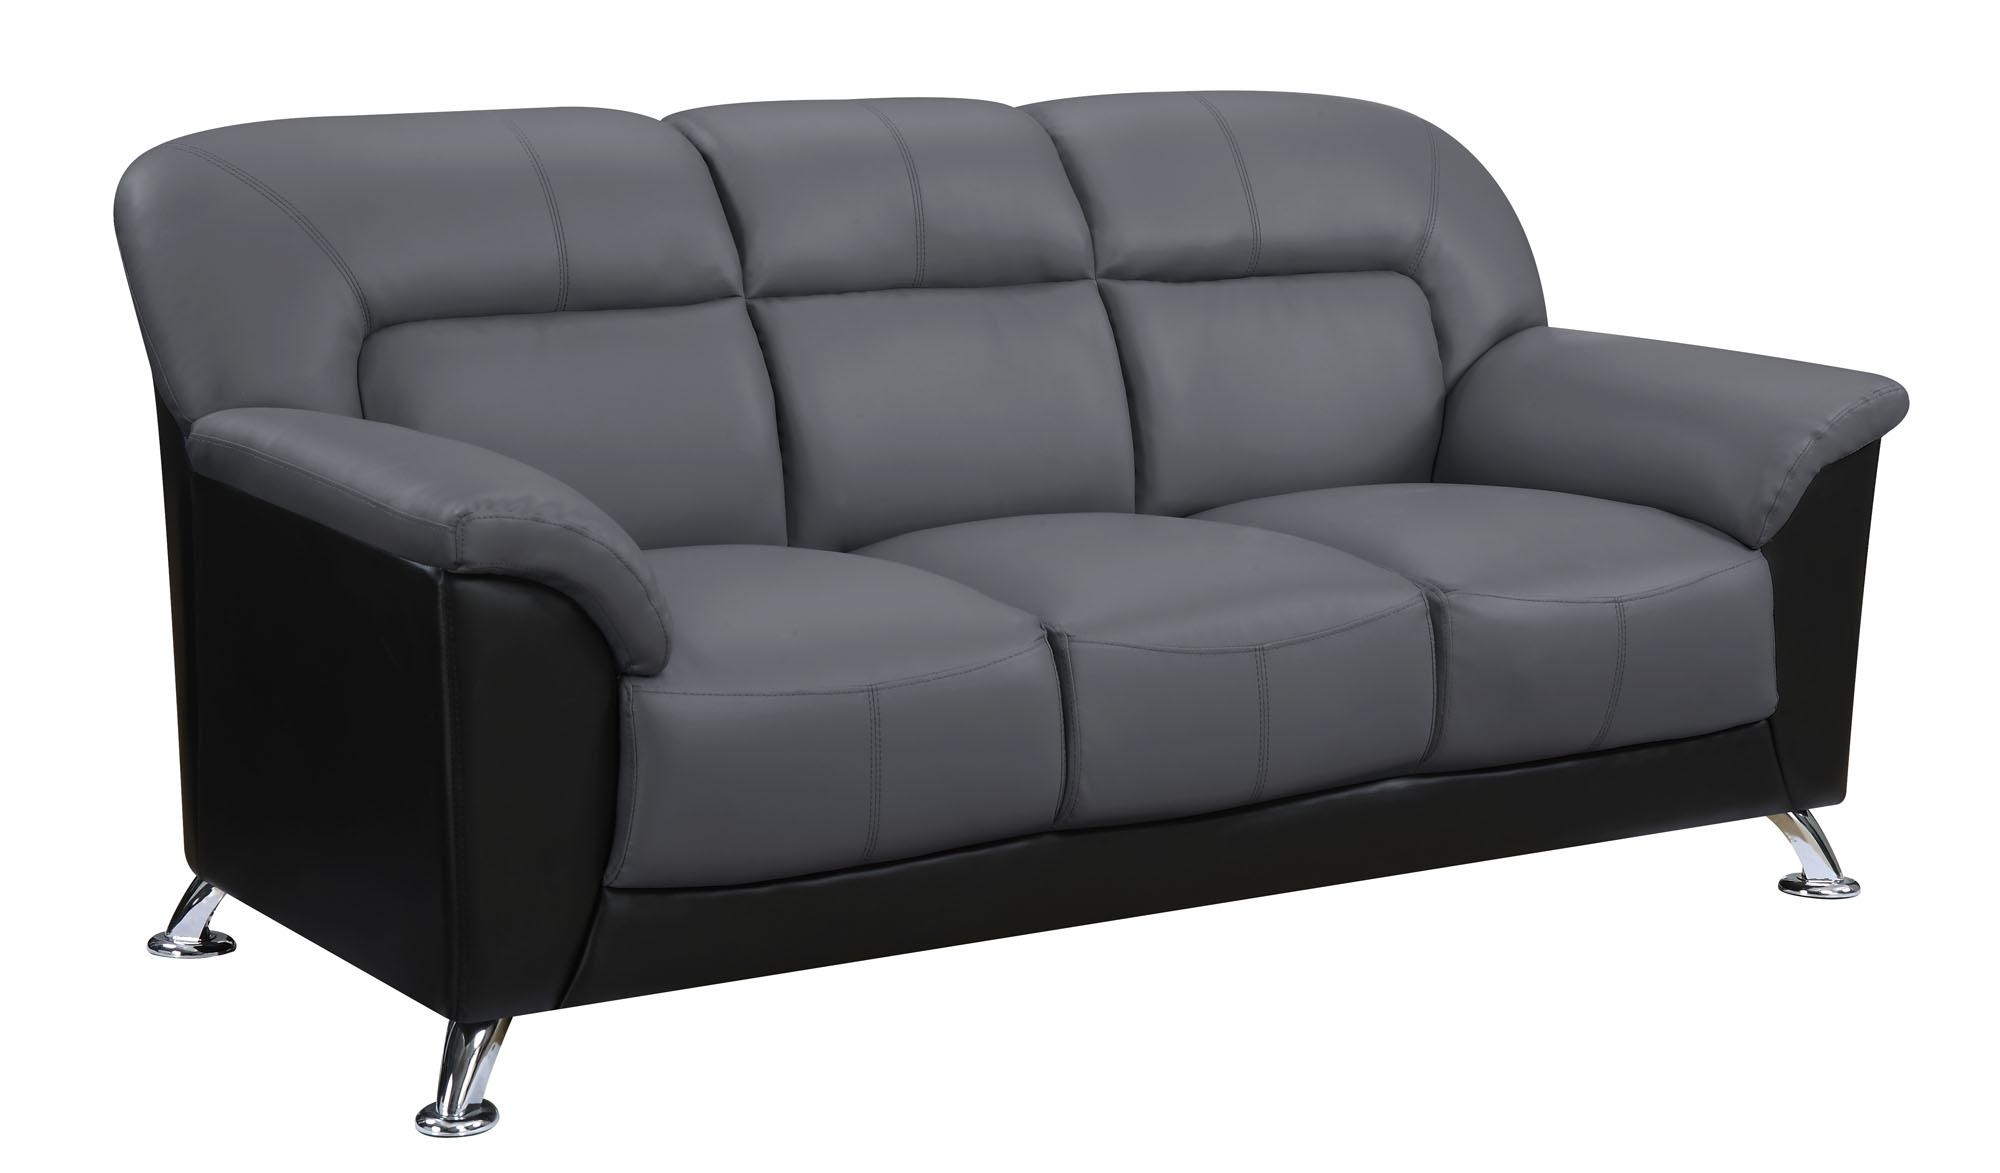 U9102 Dark Grey/black Vinyl Sofaglobal Furniture Within Black Vinyl Sofas (Image 18 of 20)